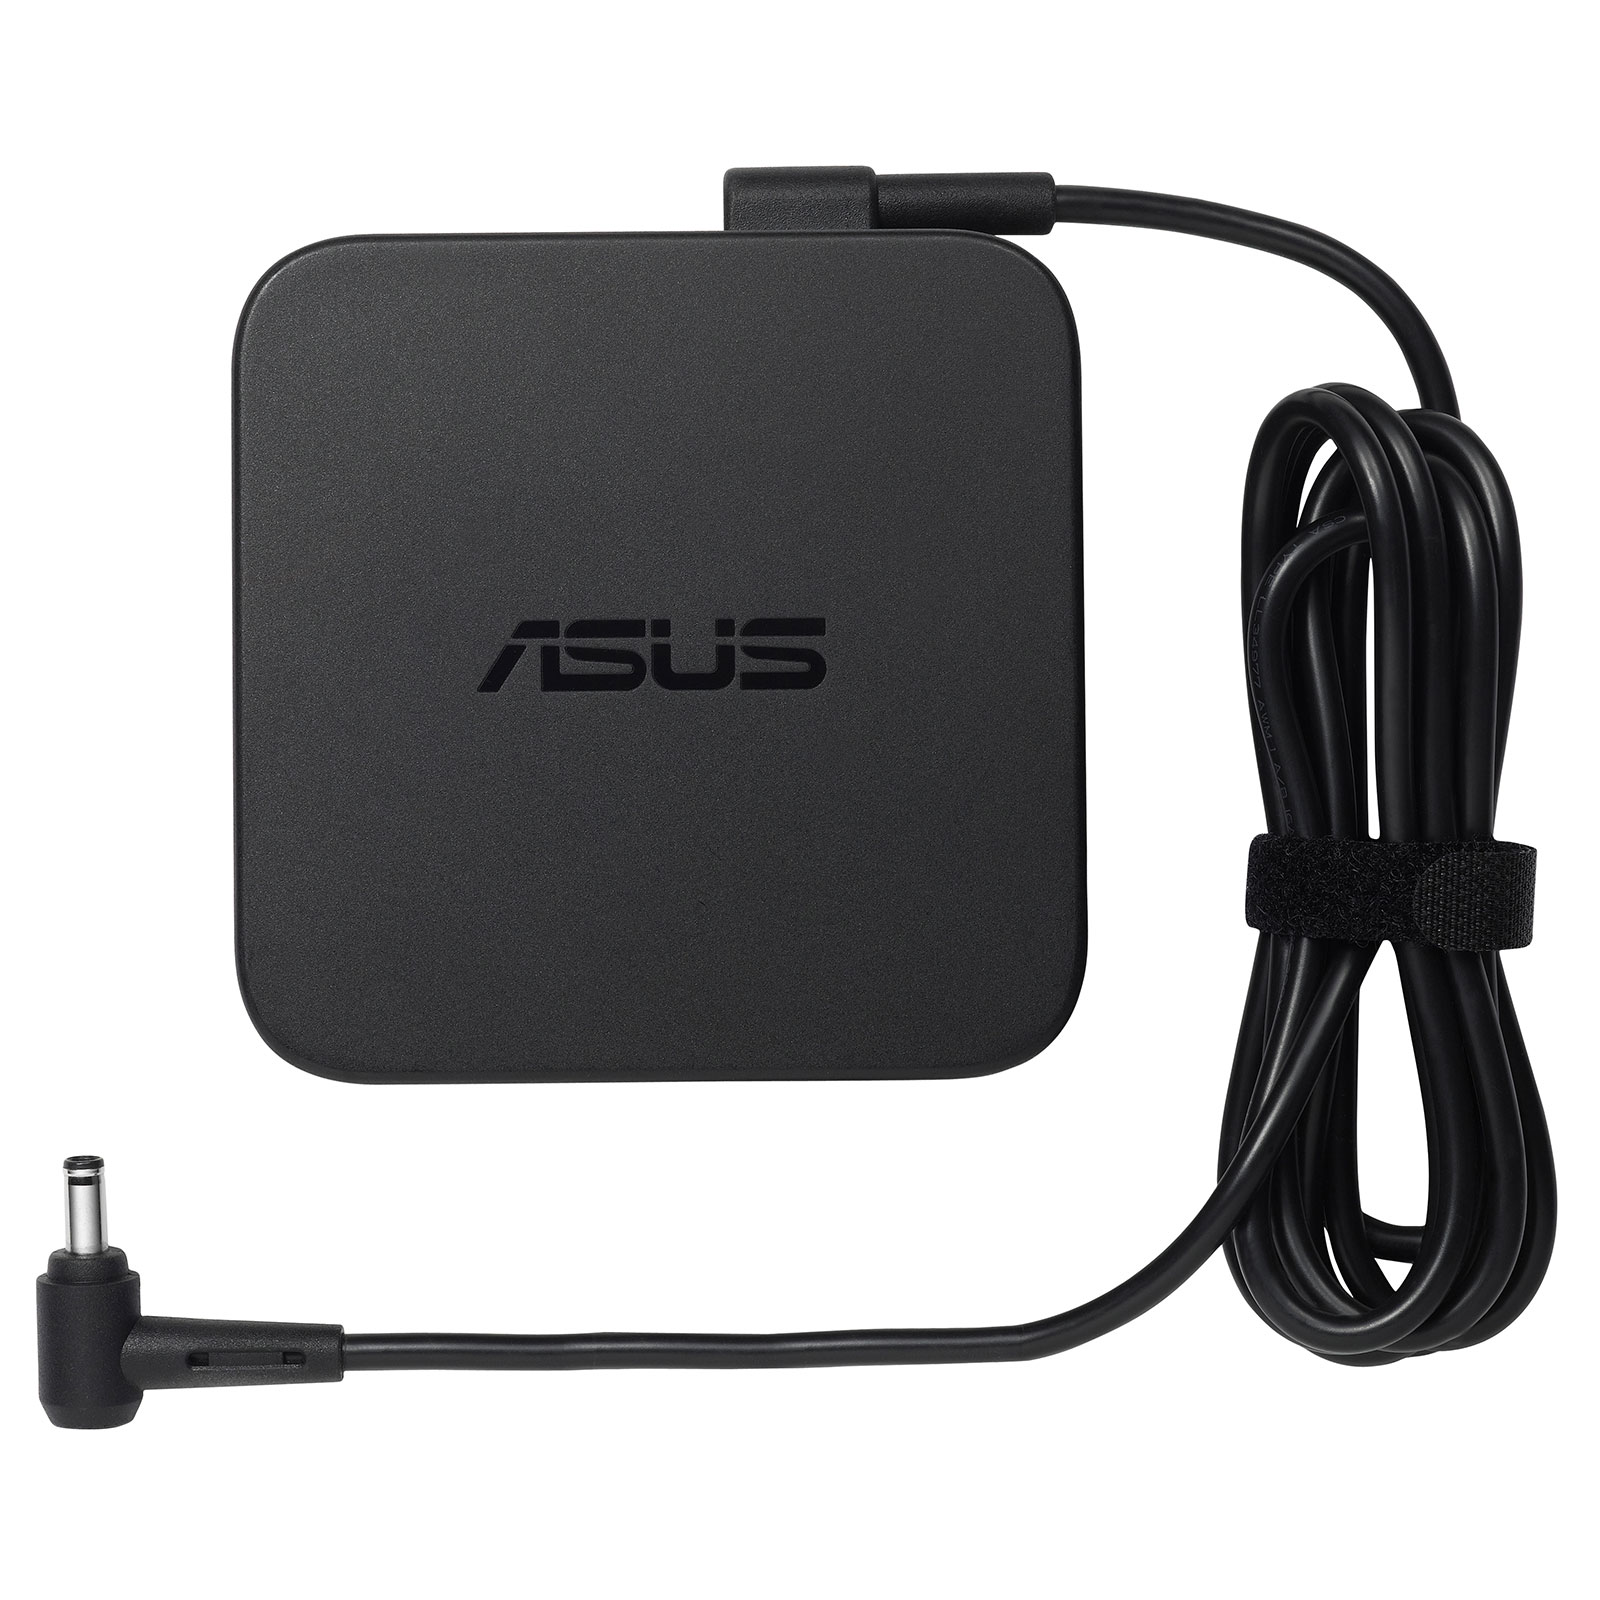 asus adaptateur secteur 65w 0a001 00040700 chargeur pc. Black Bedroom Furniture Sets. Home Design Ideas